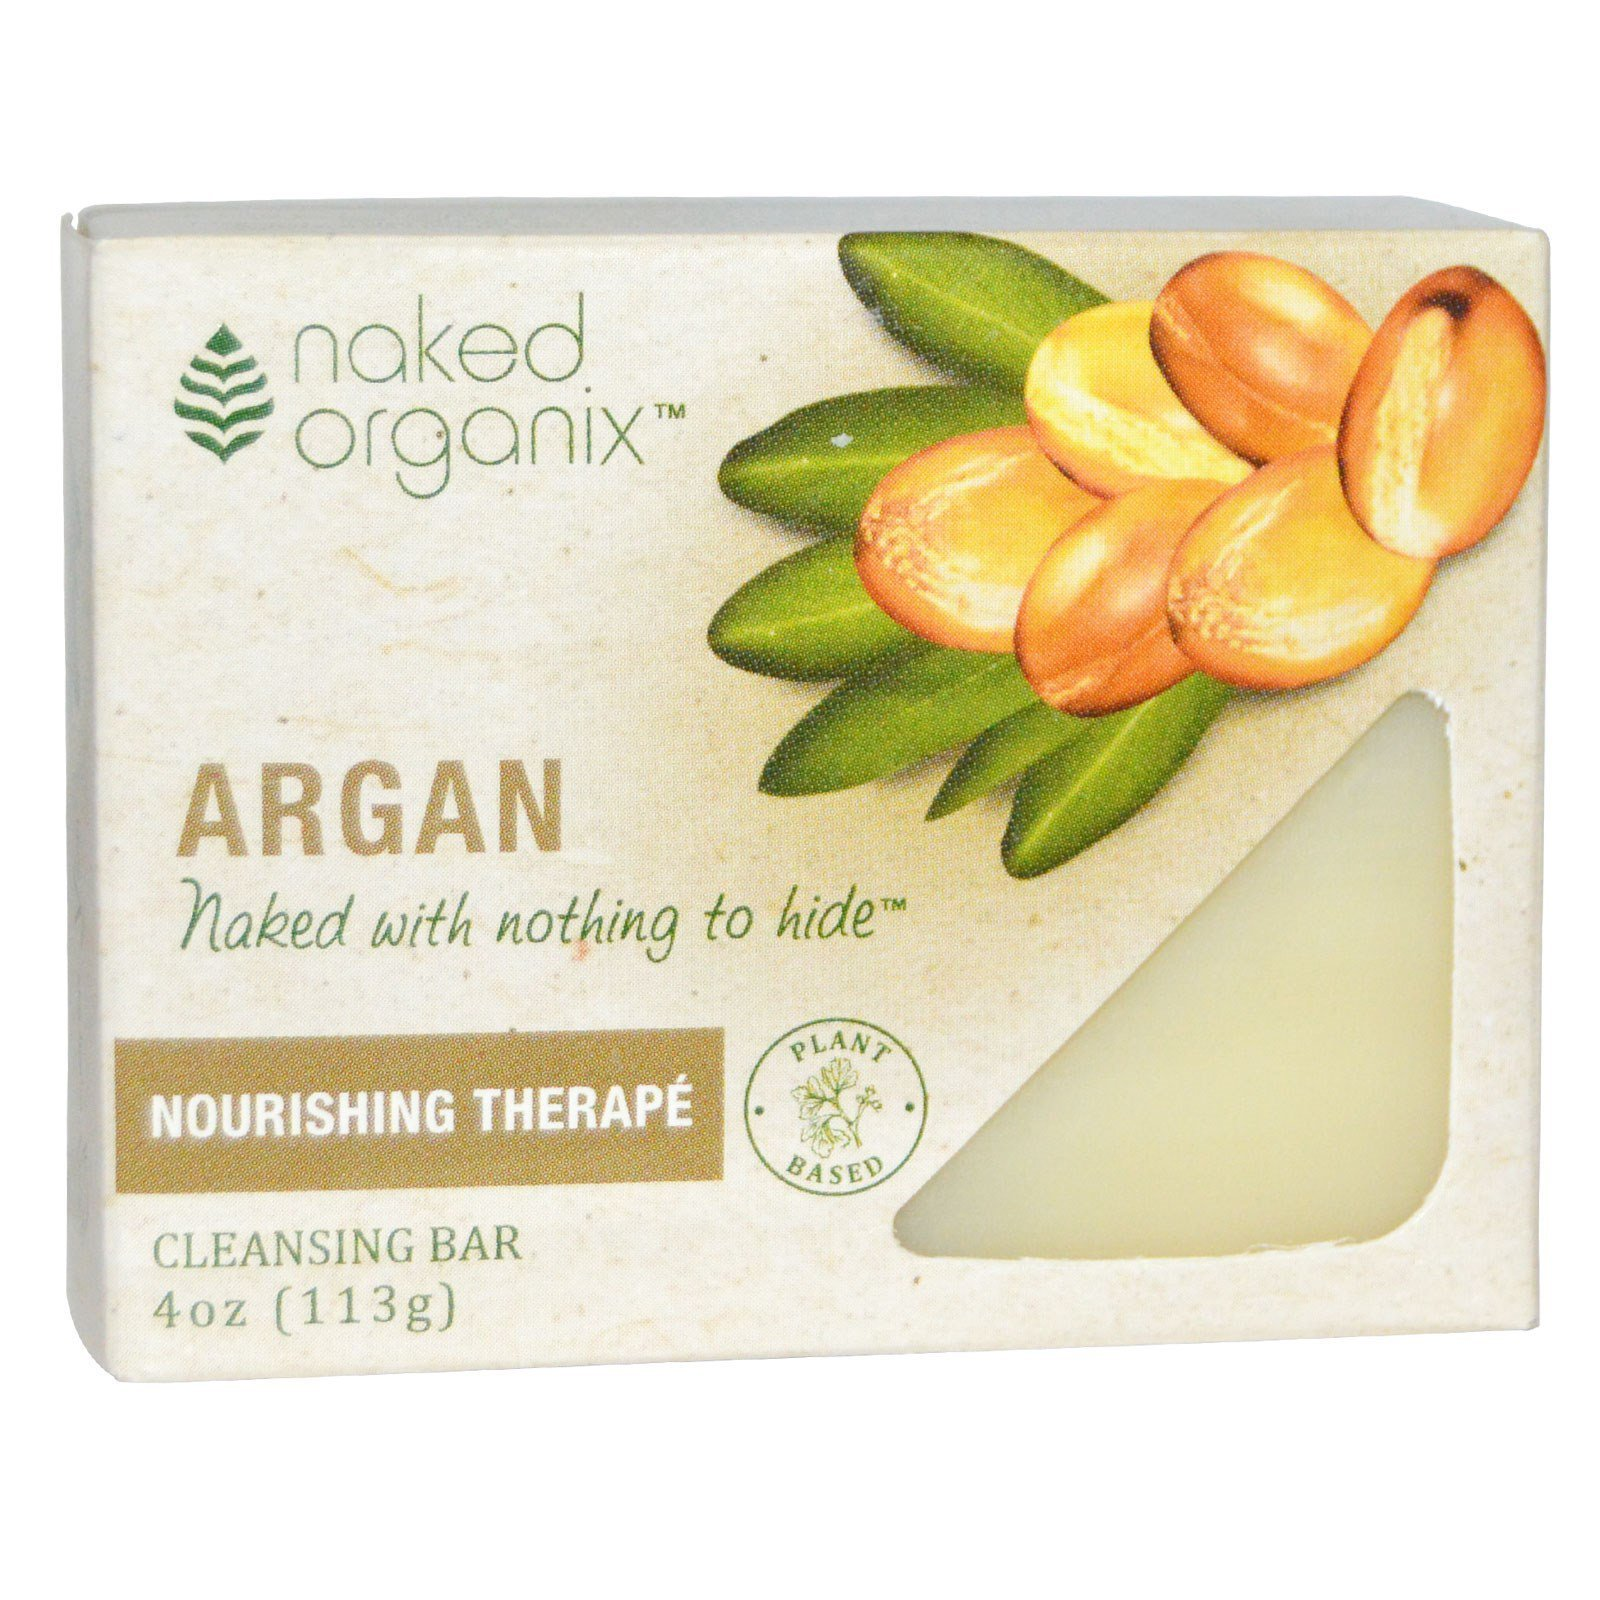 Organix South, Naked Organix, Nourishing Therapé, Argan Cleansing Bar, Fragrance Free, 4 oz (113 g)